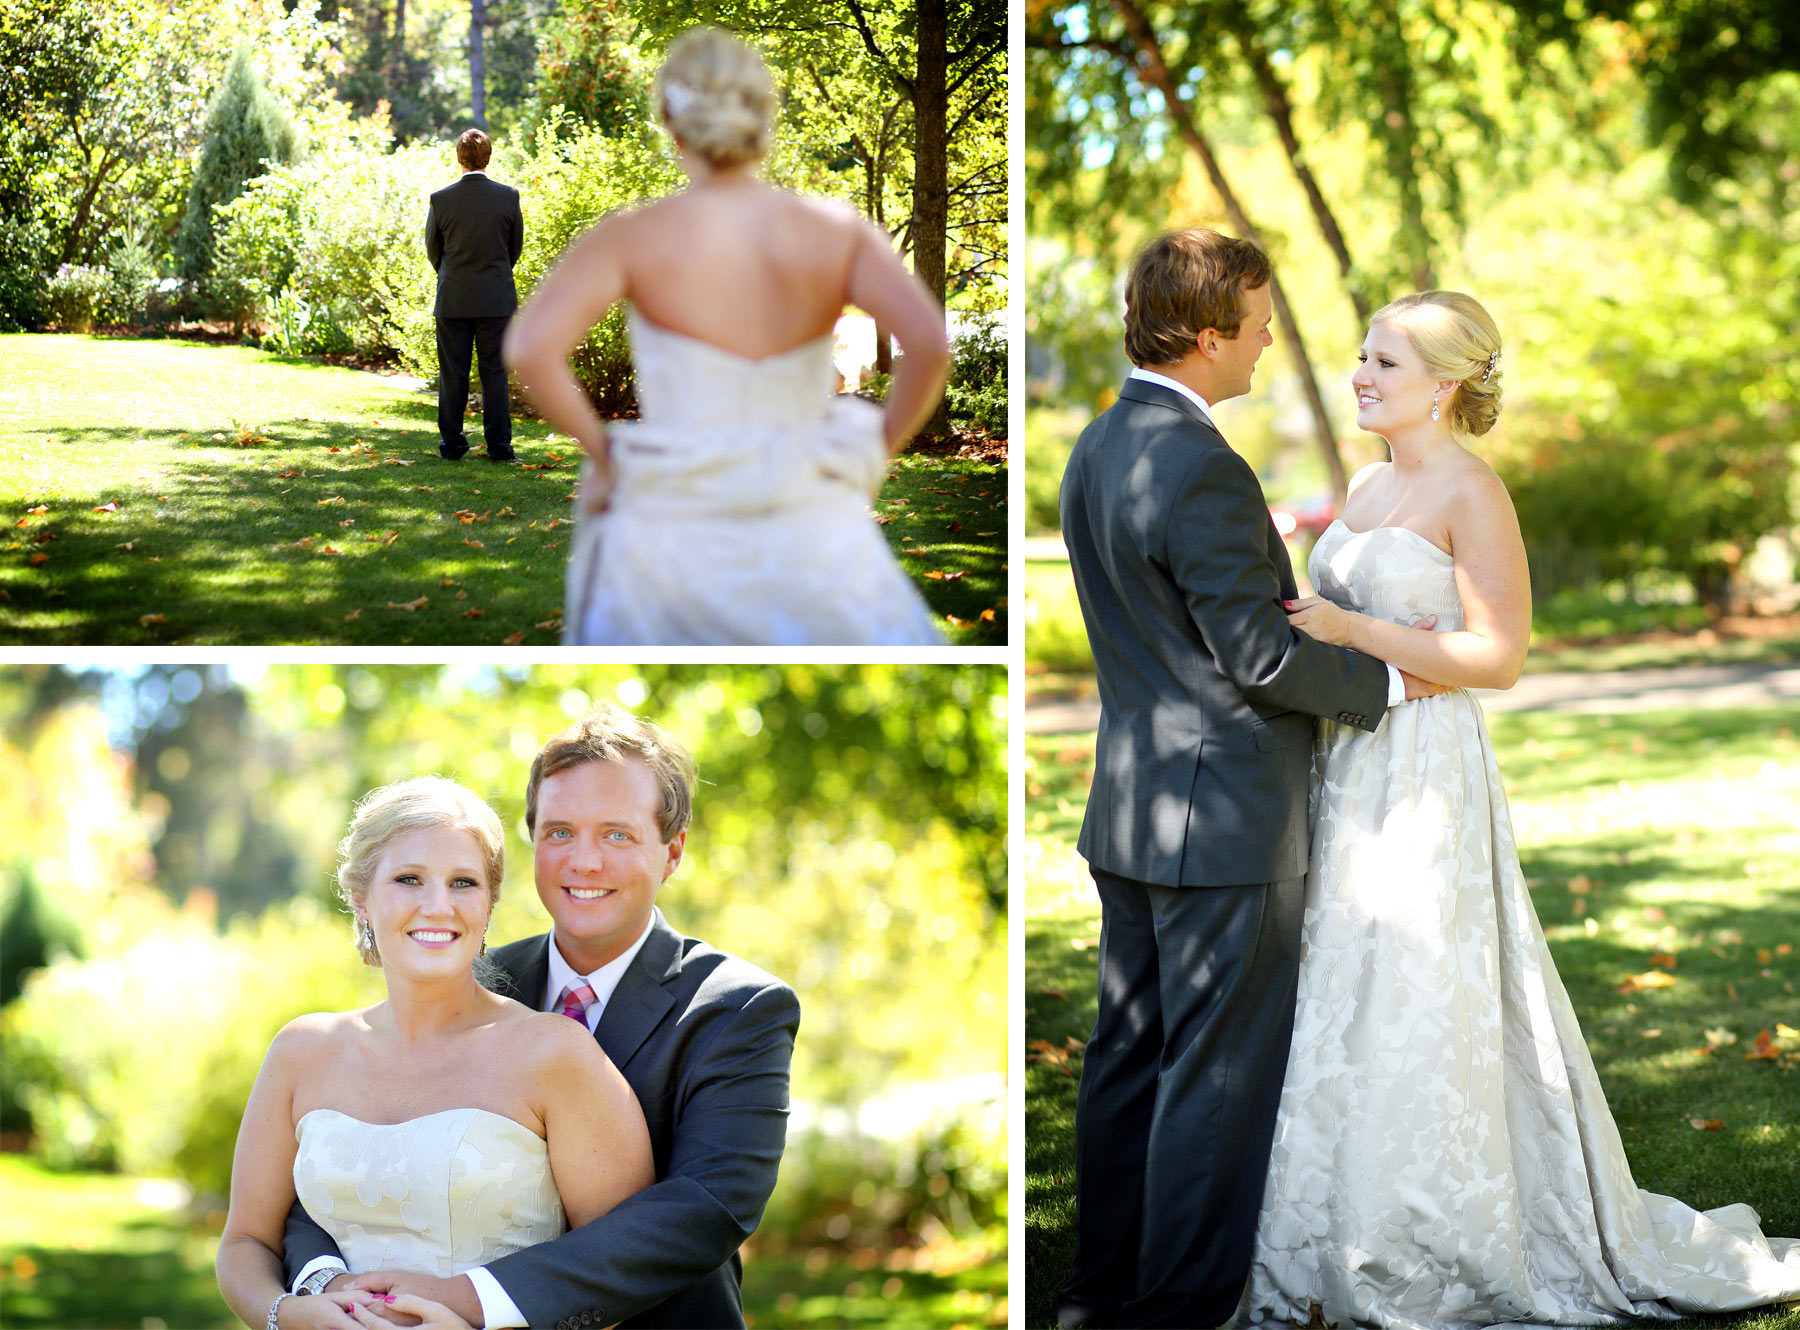 03-Minneapolis-Minnesota-Wedding-Photography-by-Vick-Photography--Calhoun-Beach-Club-Garden-First-Look-Kristen-&-Nick.jpg